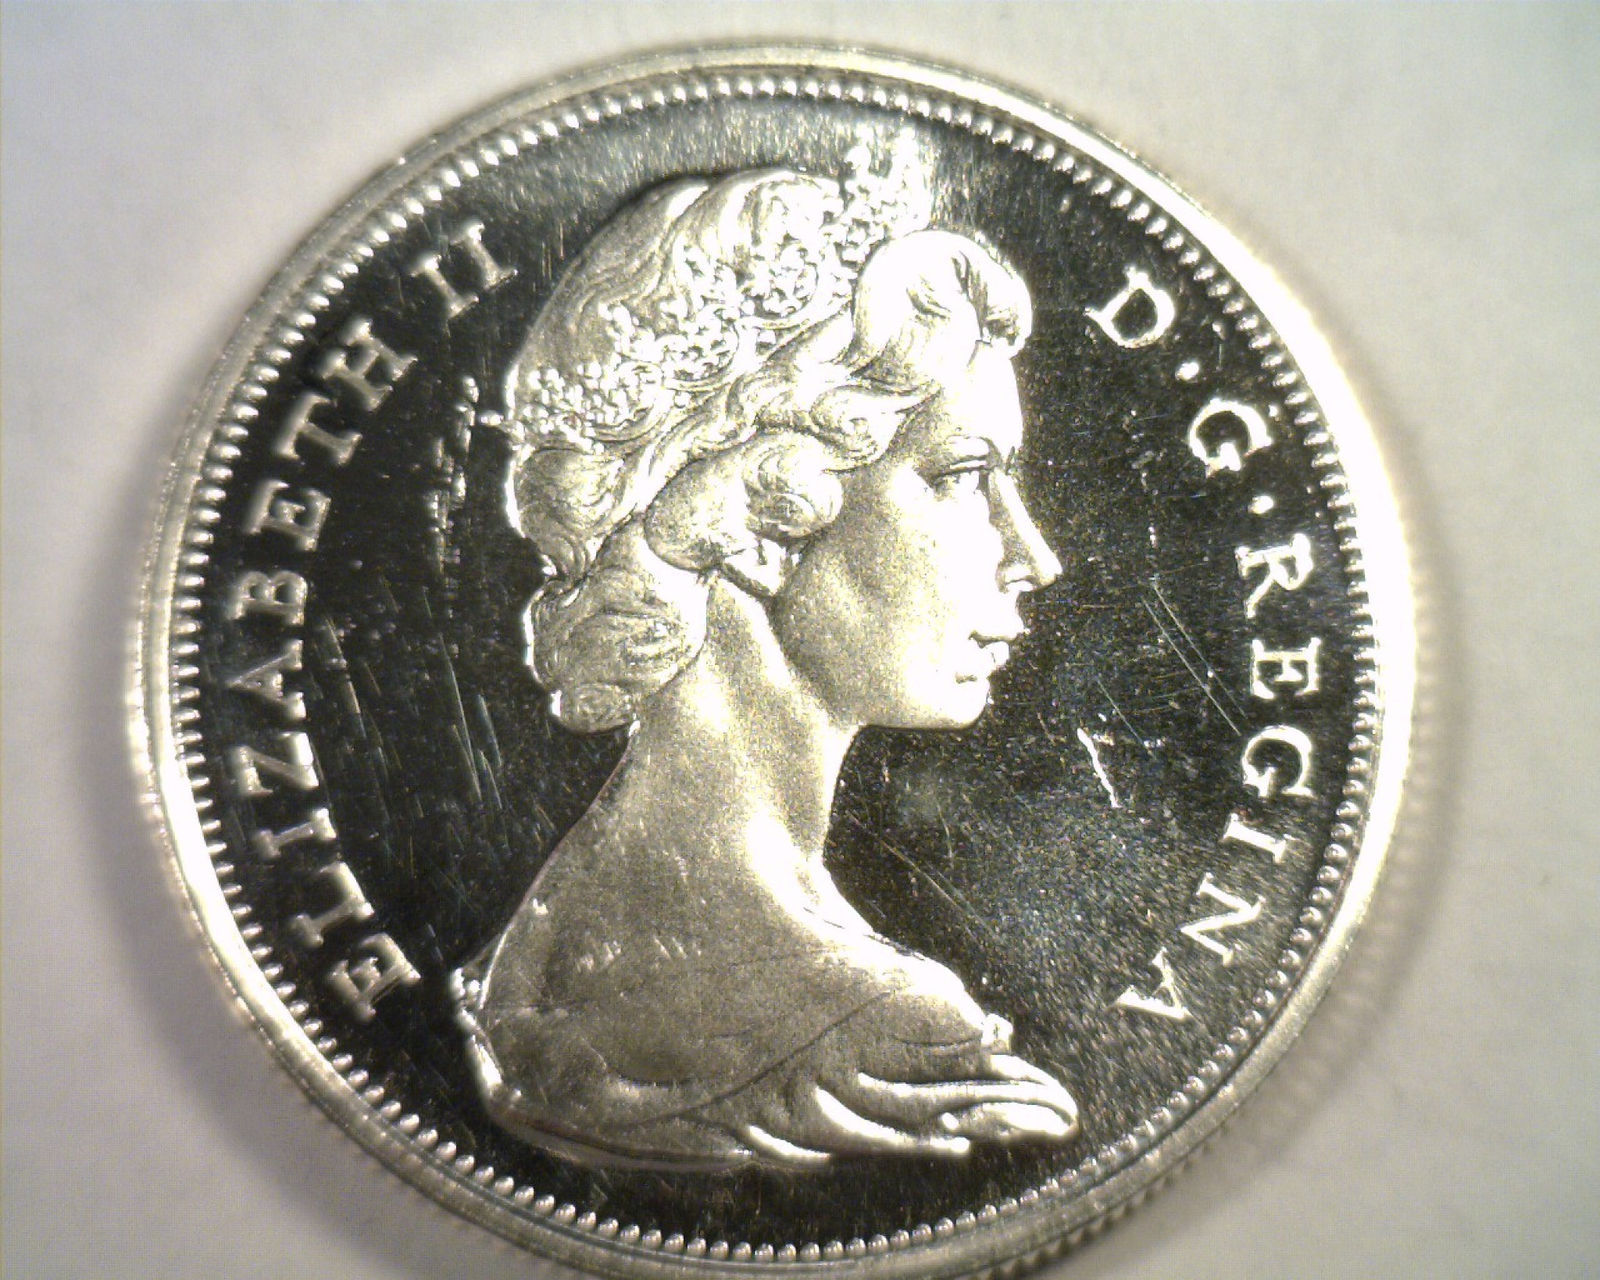 Primary image for 1967 CANADIAN HALF DOLLAR CHOICE UNCIRCULATED / GEM PROOF LIKE CAMEO ORIGINAL